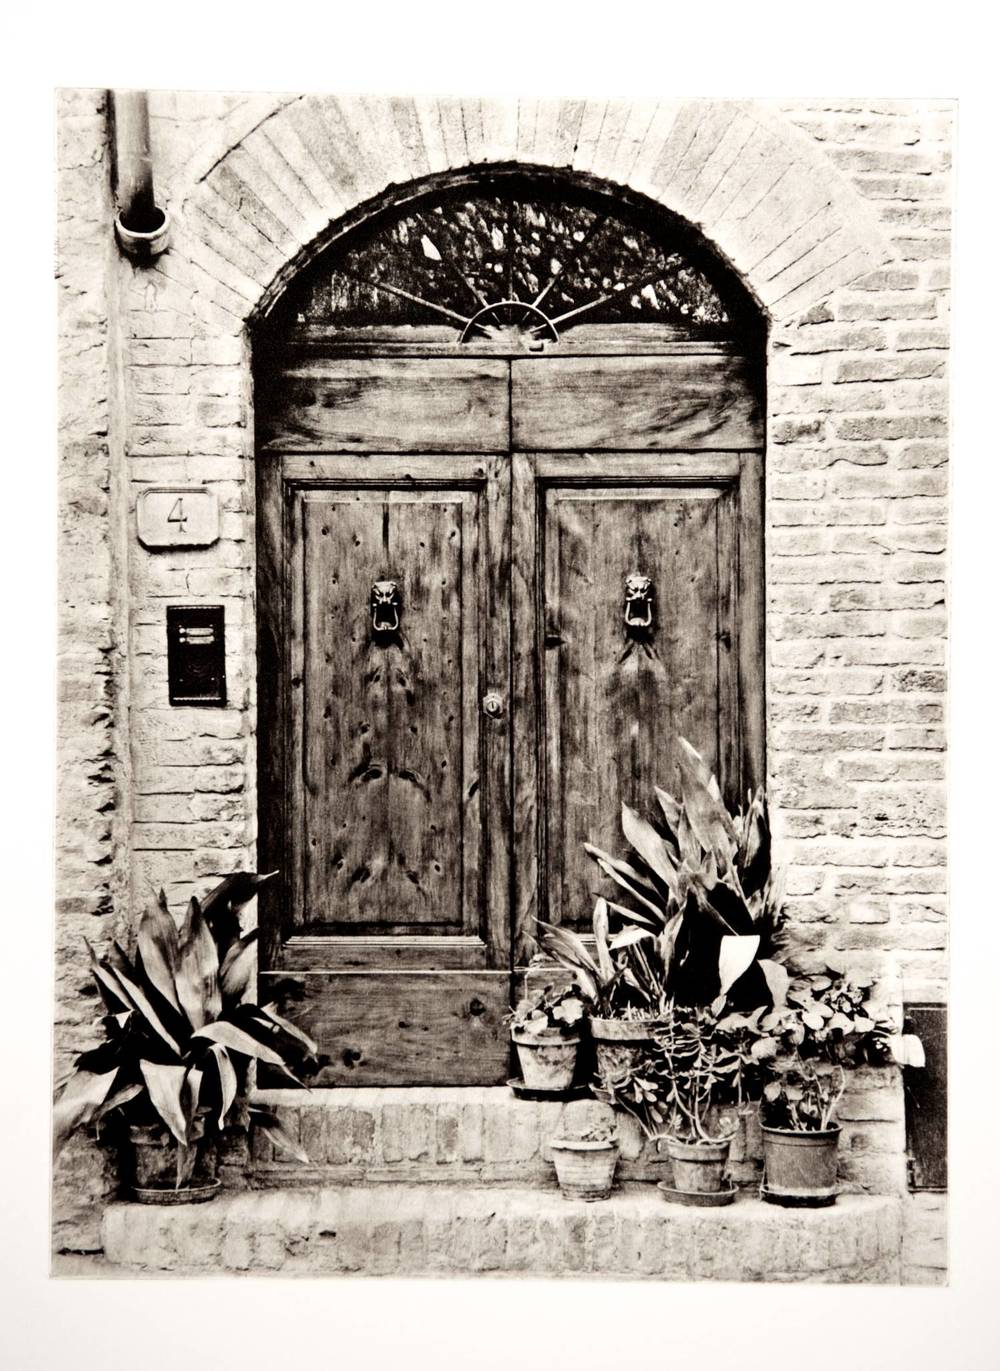 Doors at Via San Stefano, San Gimignano (Italy)